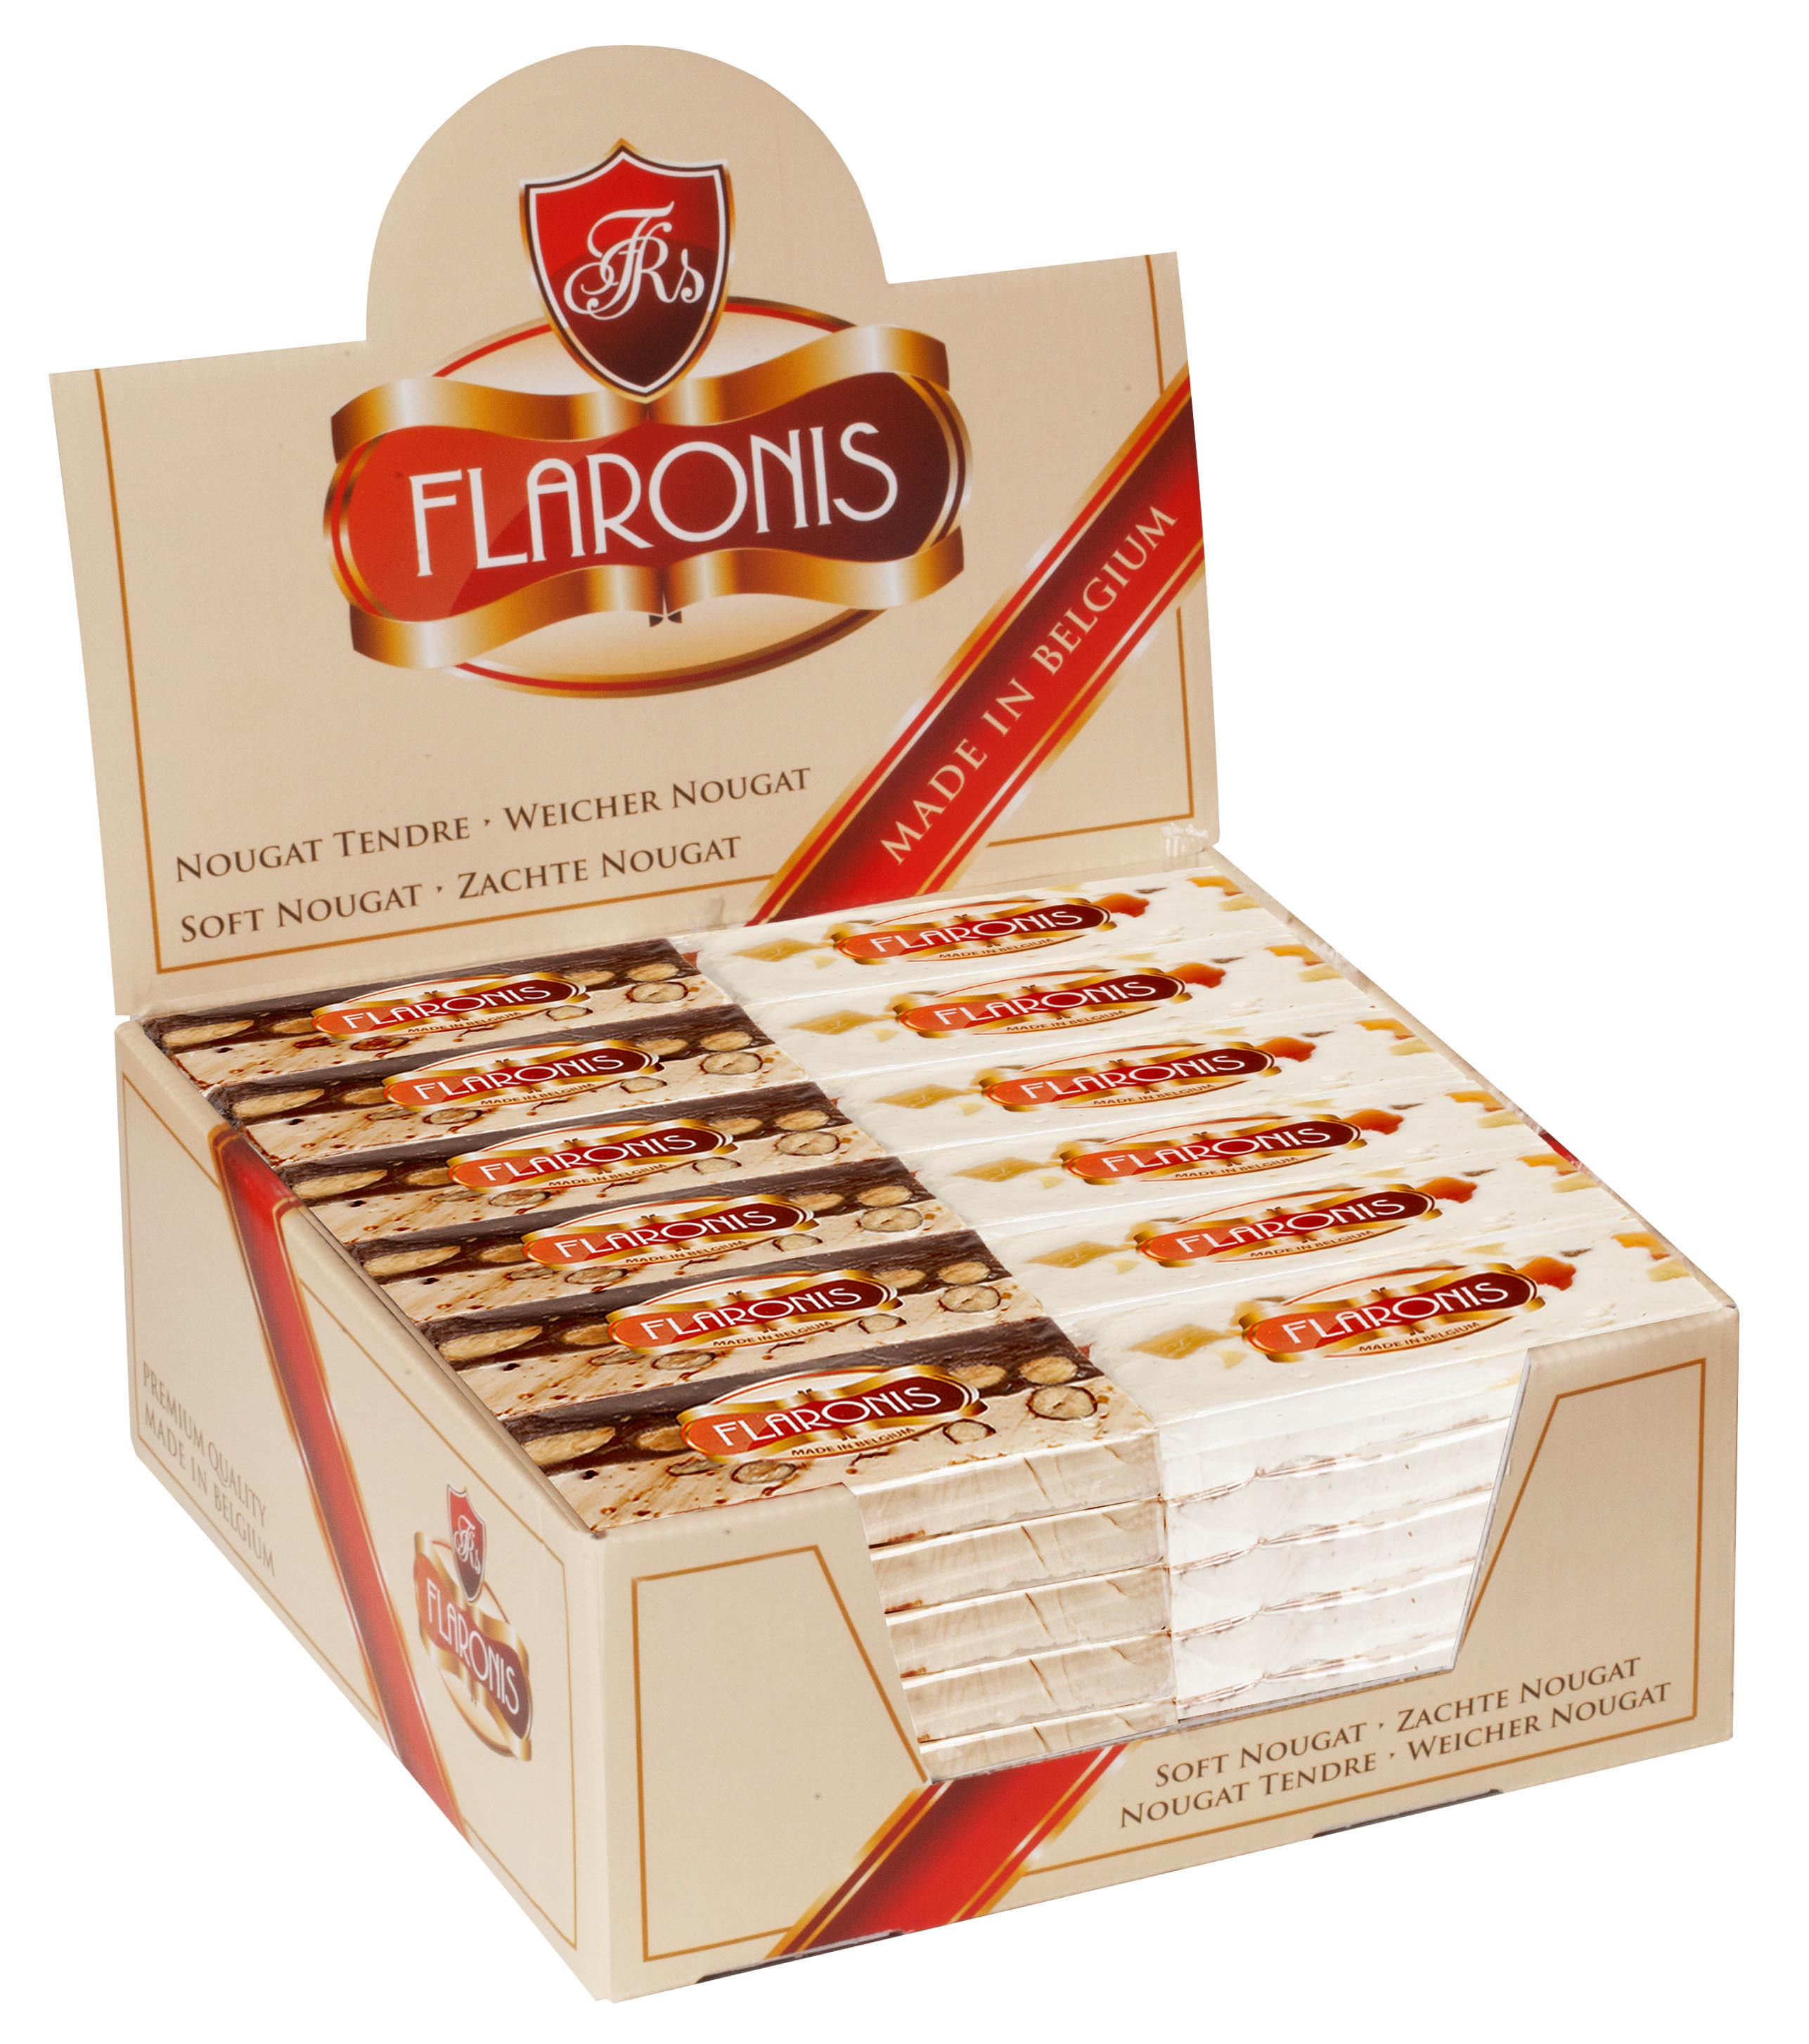 977 - Display Nougat 50g - Cappuccino + Fruits .jpg